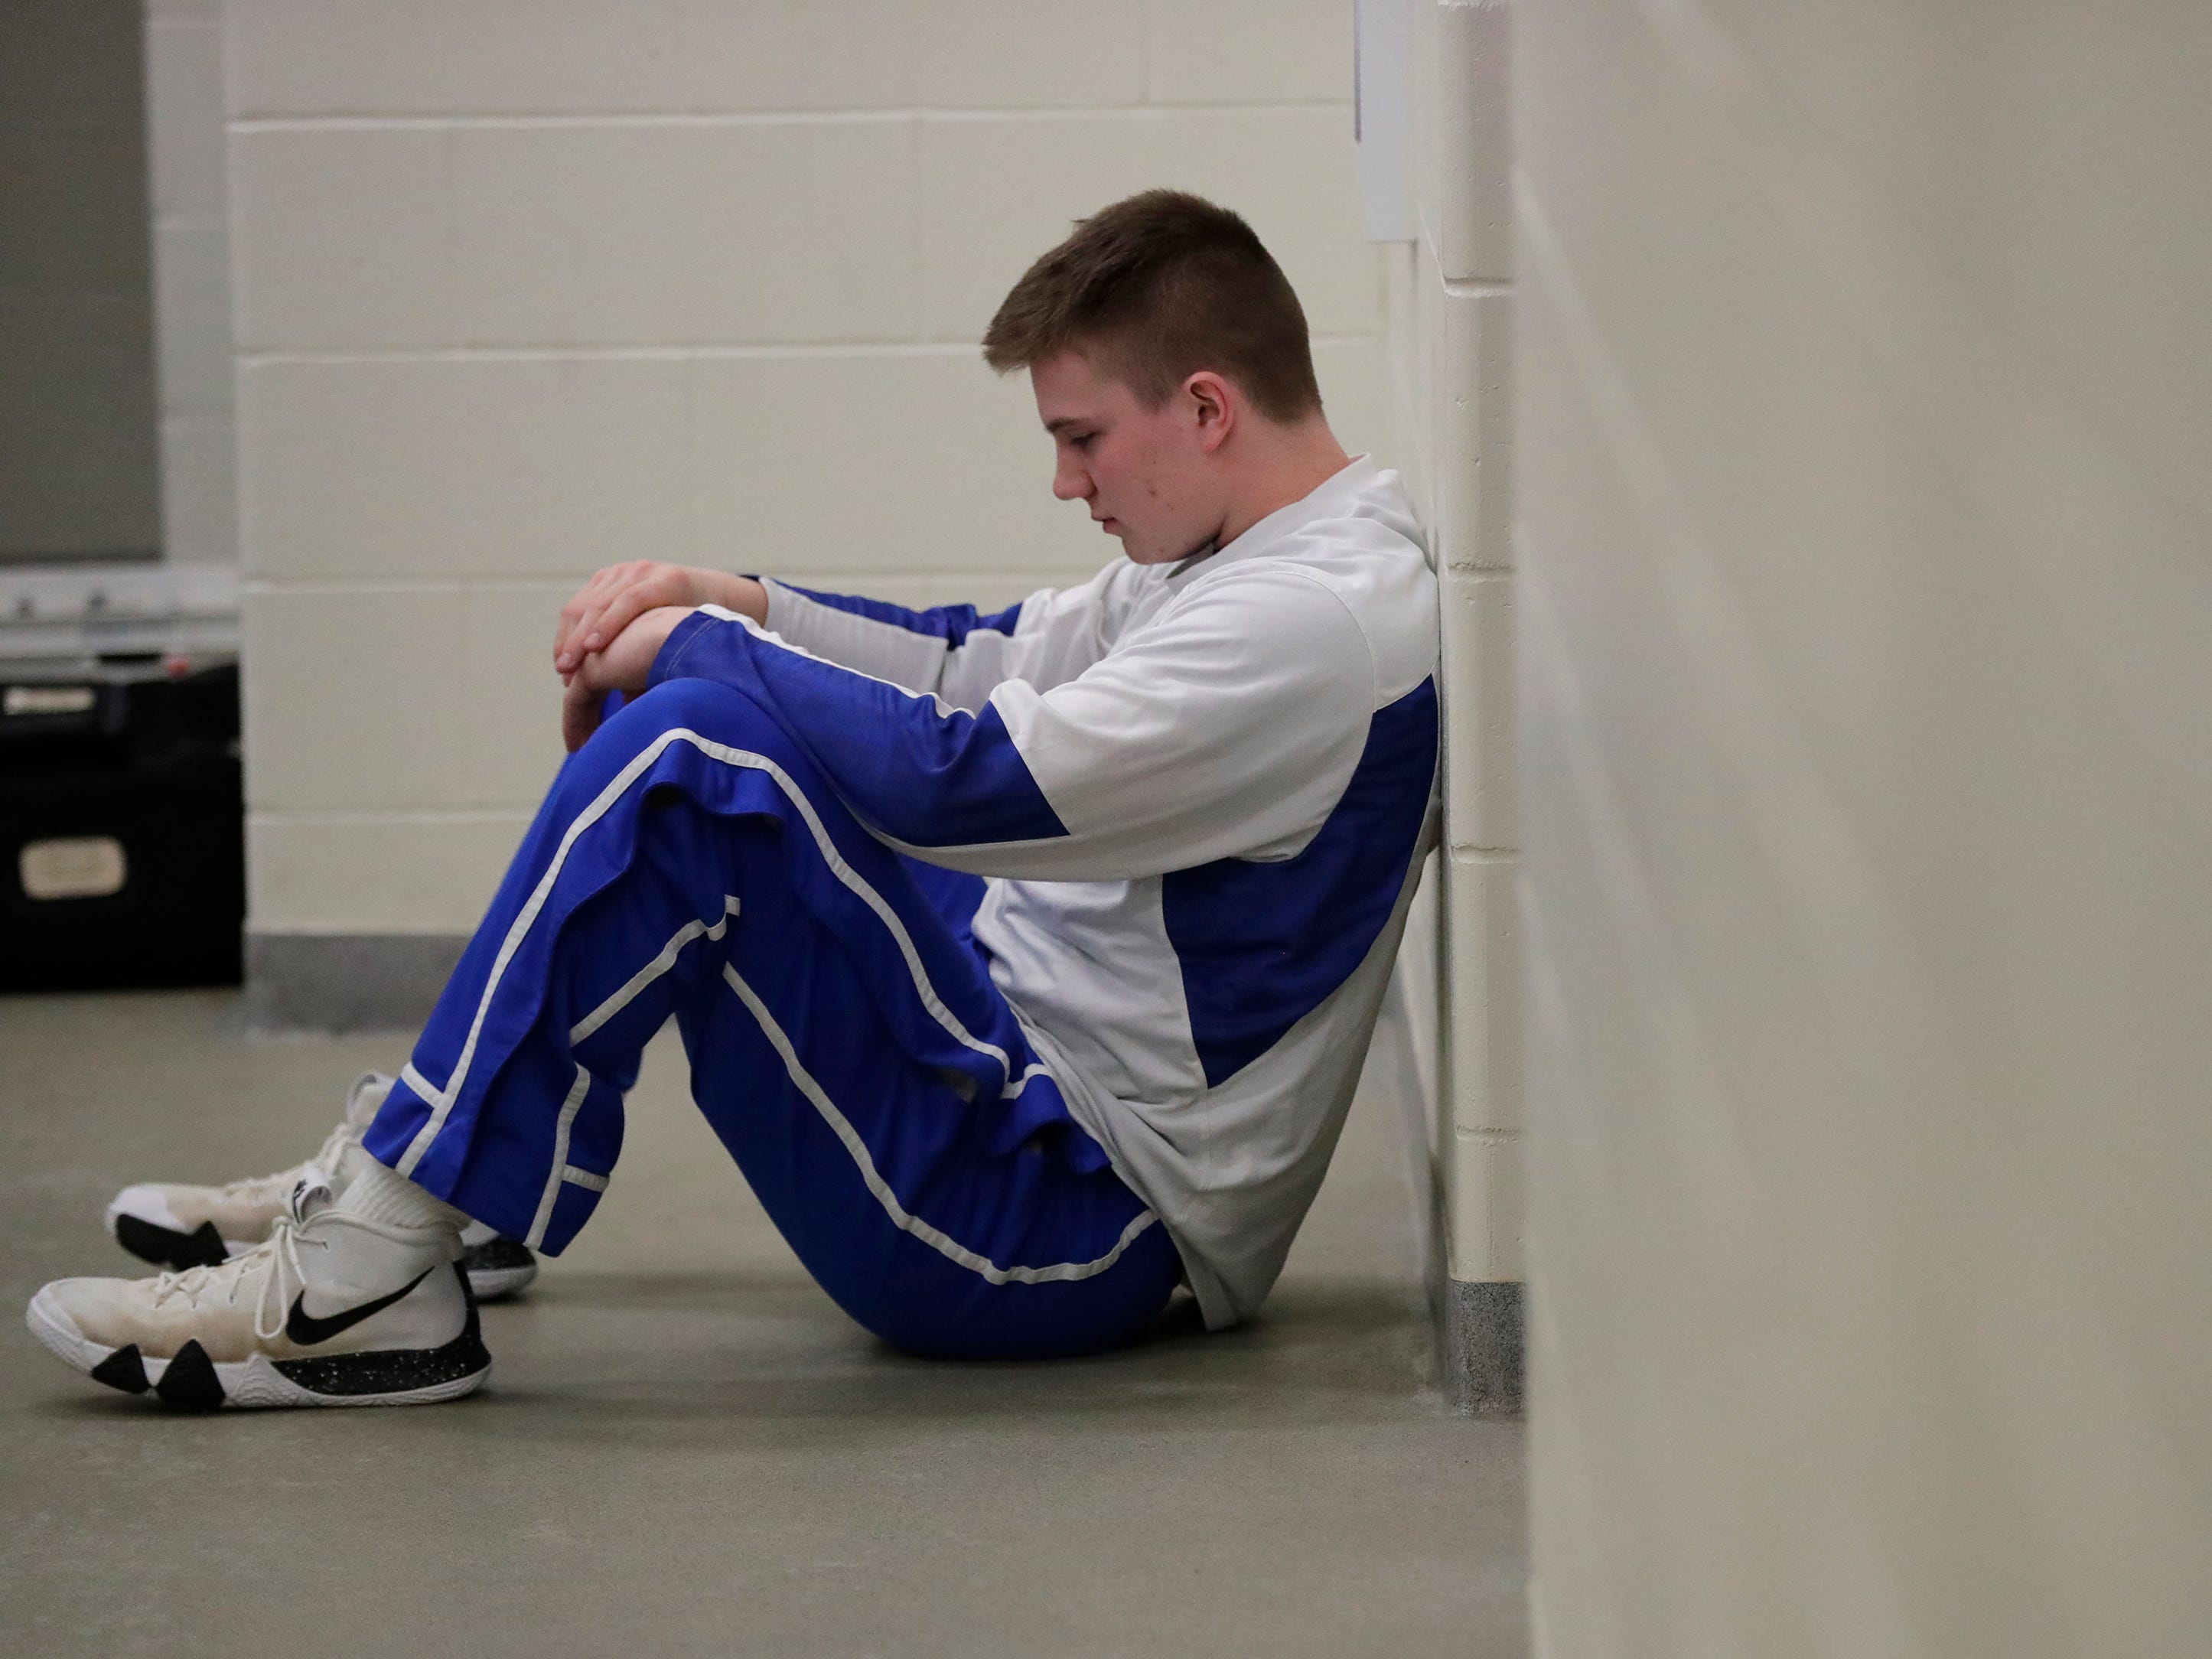 Wrightstown High School's Ben Jaeger waits in the locker room to play against Little Chute High School moments before their boys basketball game Friday, February 1, 2019, in Little Chute, Wis. 